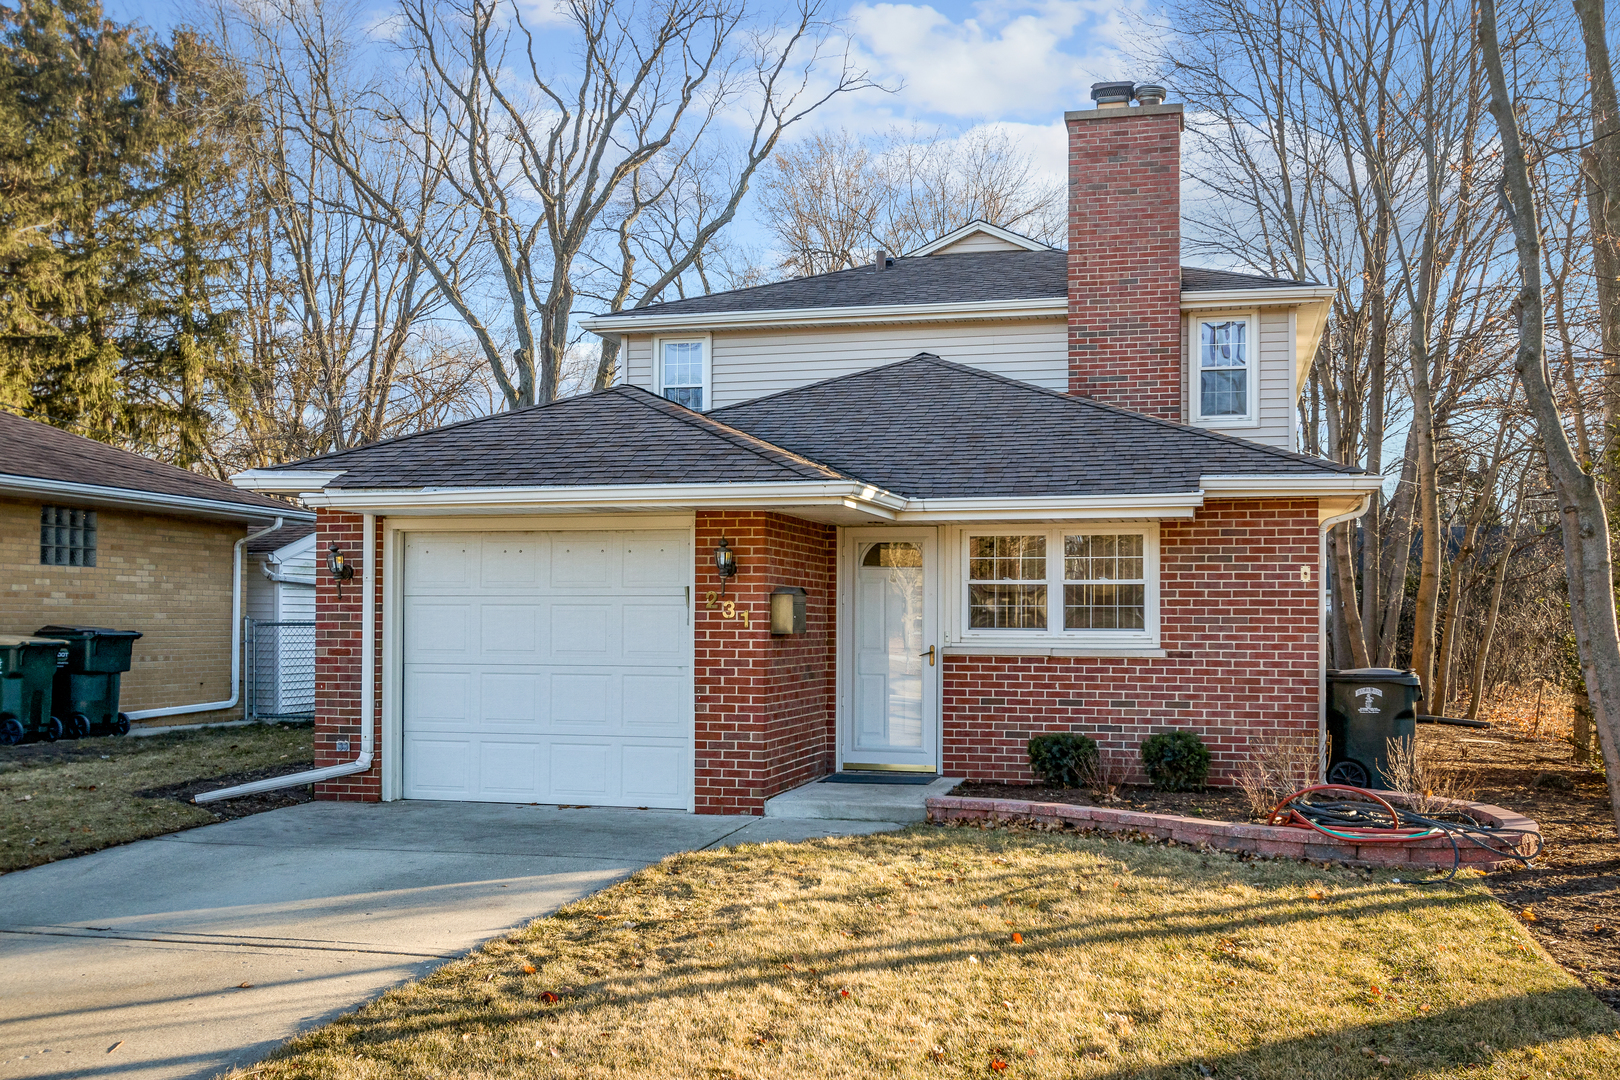 231 West Rockland Road, Libertyville, Illinois 60048